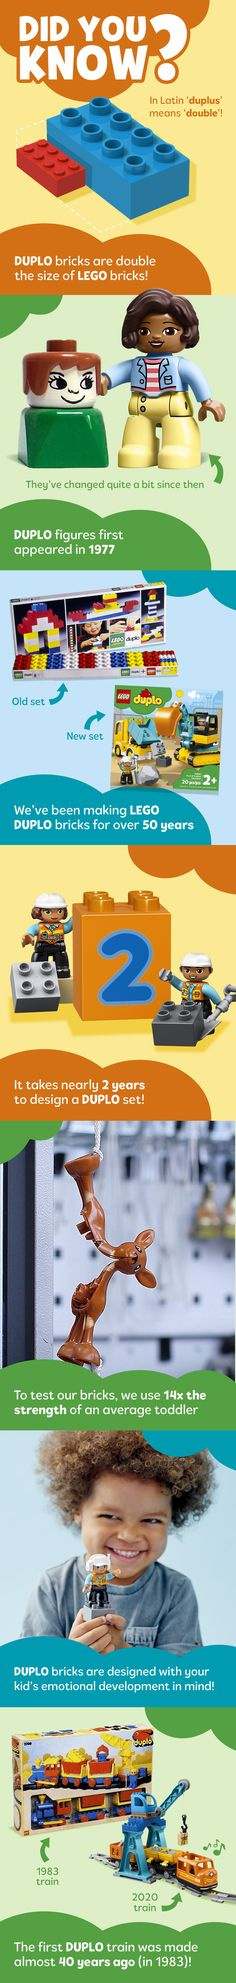 Did you know…that we've been making LEGO DUPLO set for over 50 years? Or that DUPLO bricks are twice the size of a normal LEGO brick, and therefore there's no choking hazard for the little ones? Check out these fun facts about LEGO DUPLO we prepared for you!